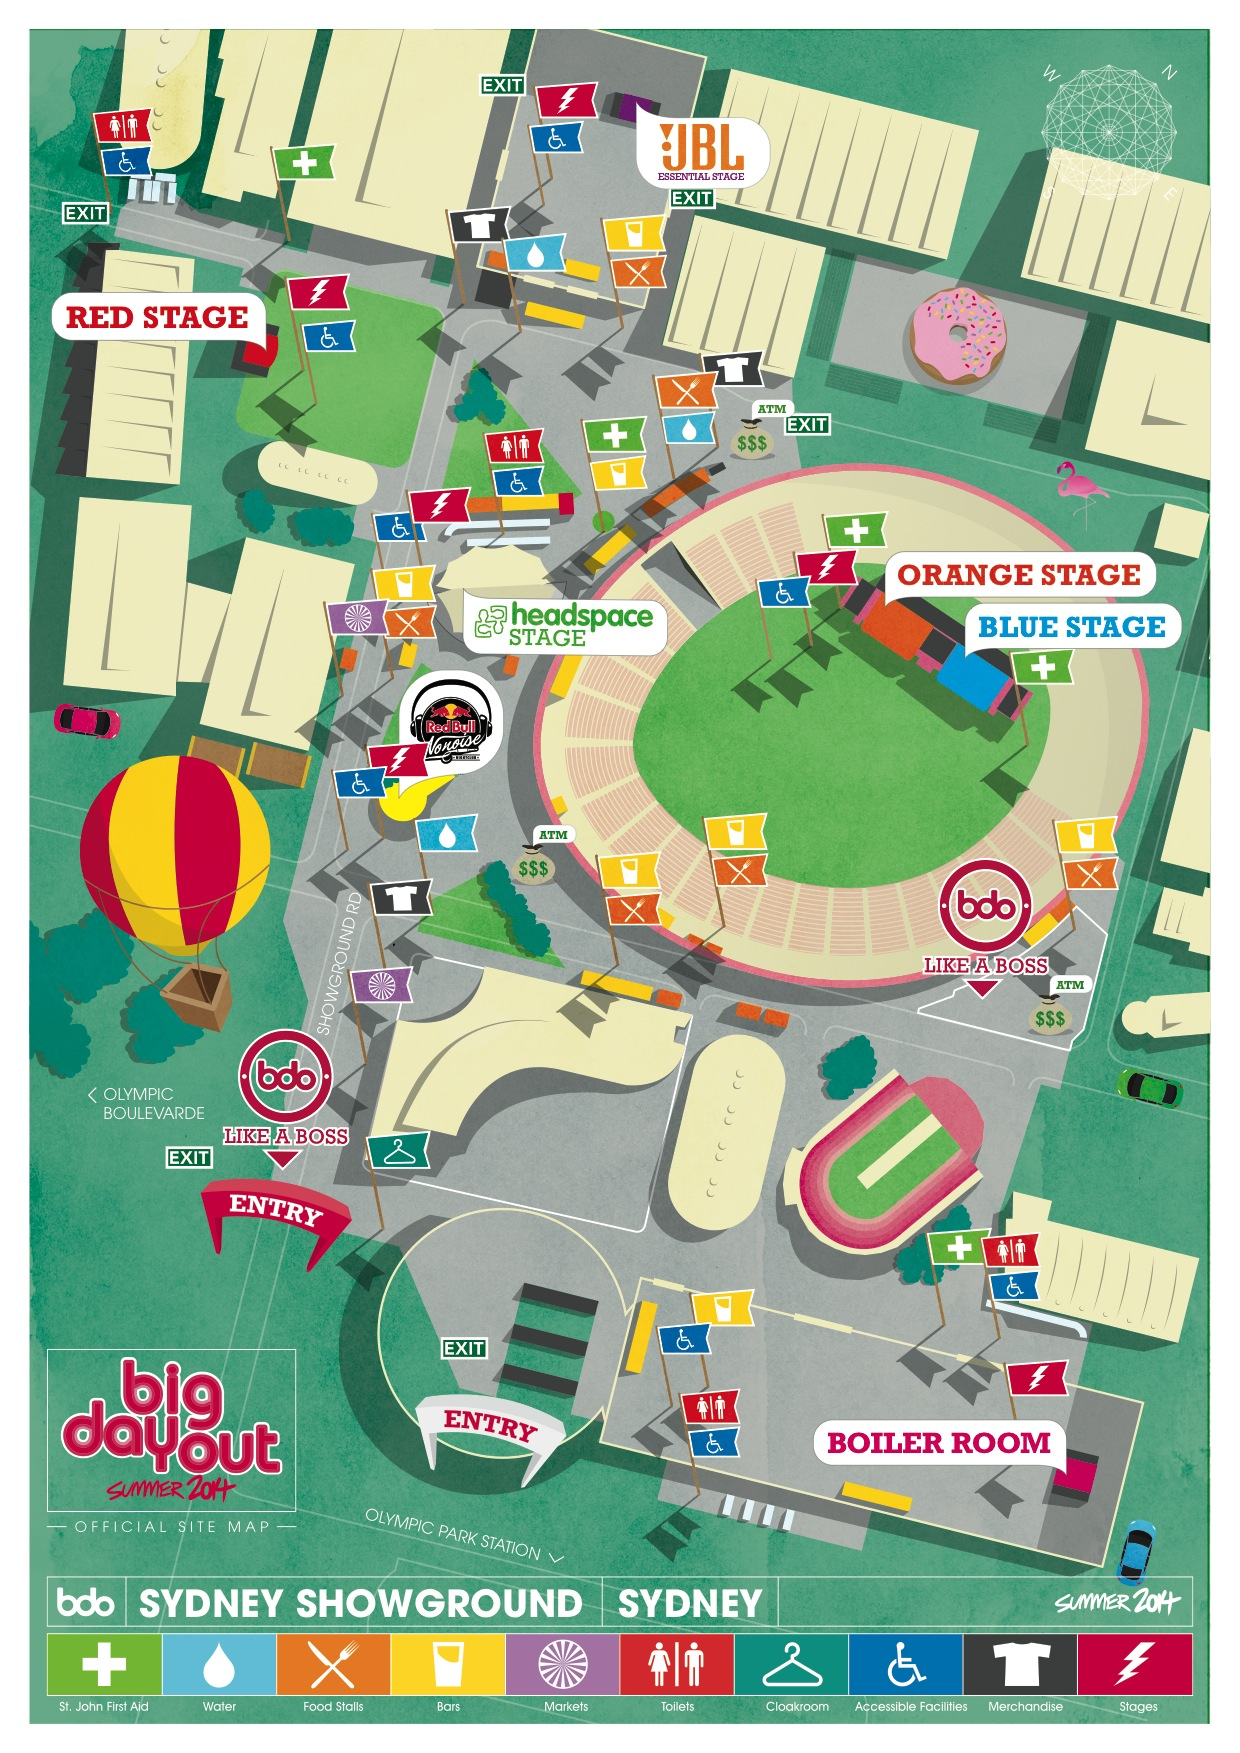 royal adelaide show 2015 event guide